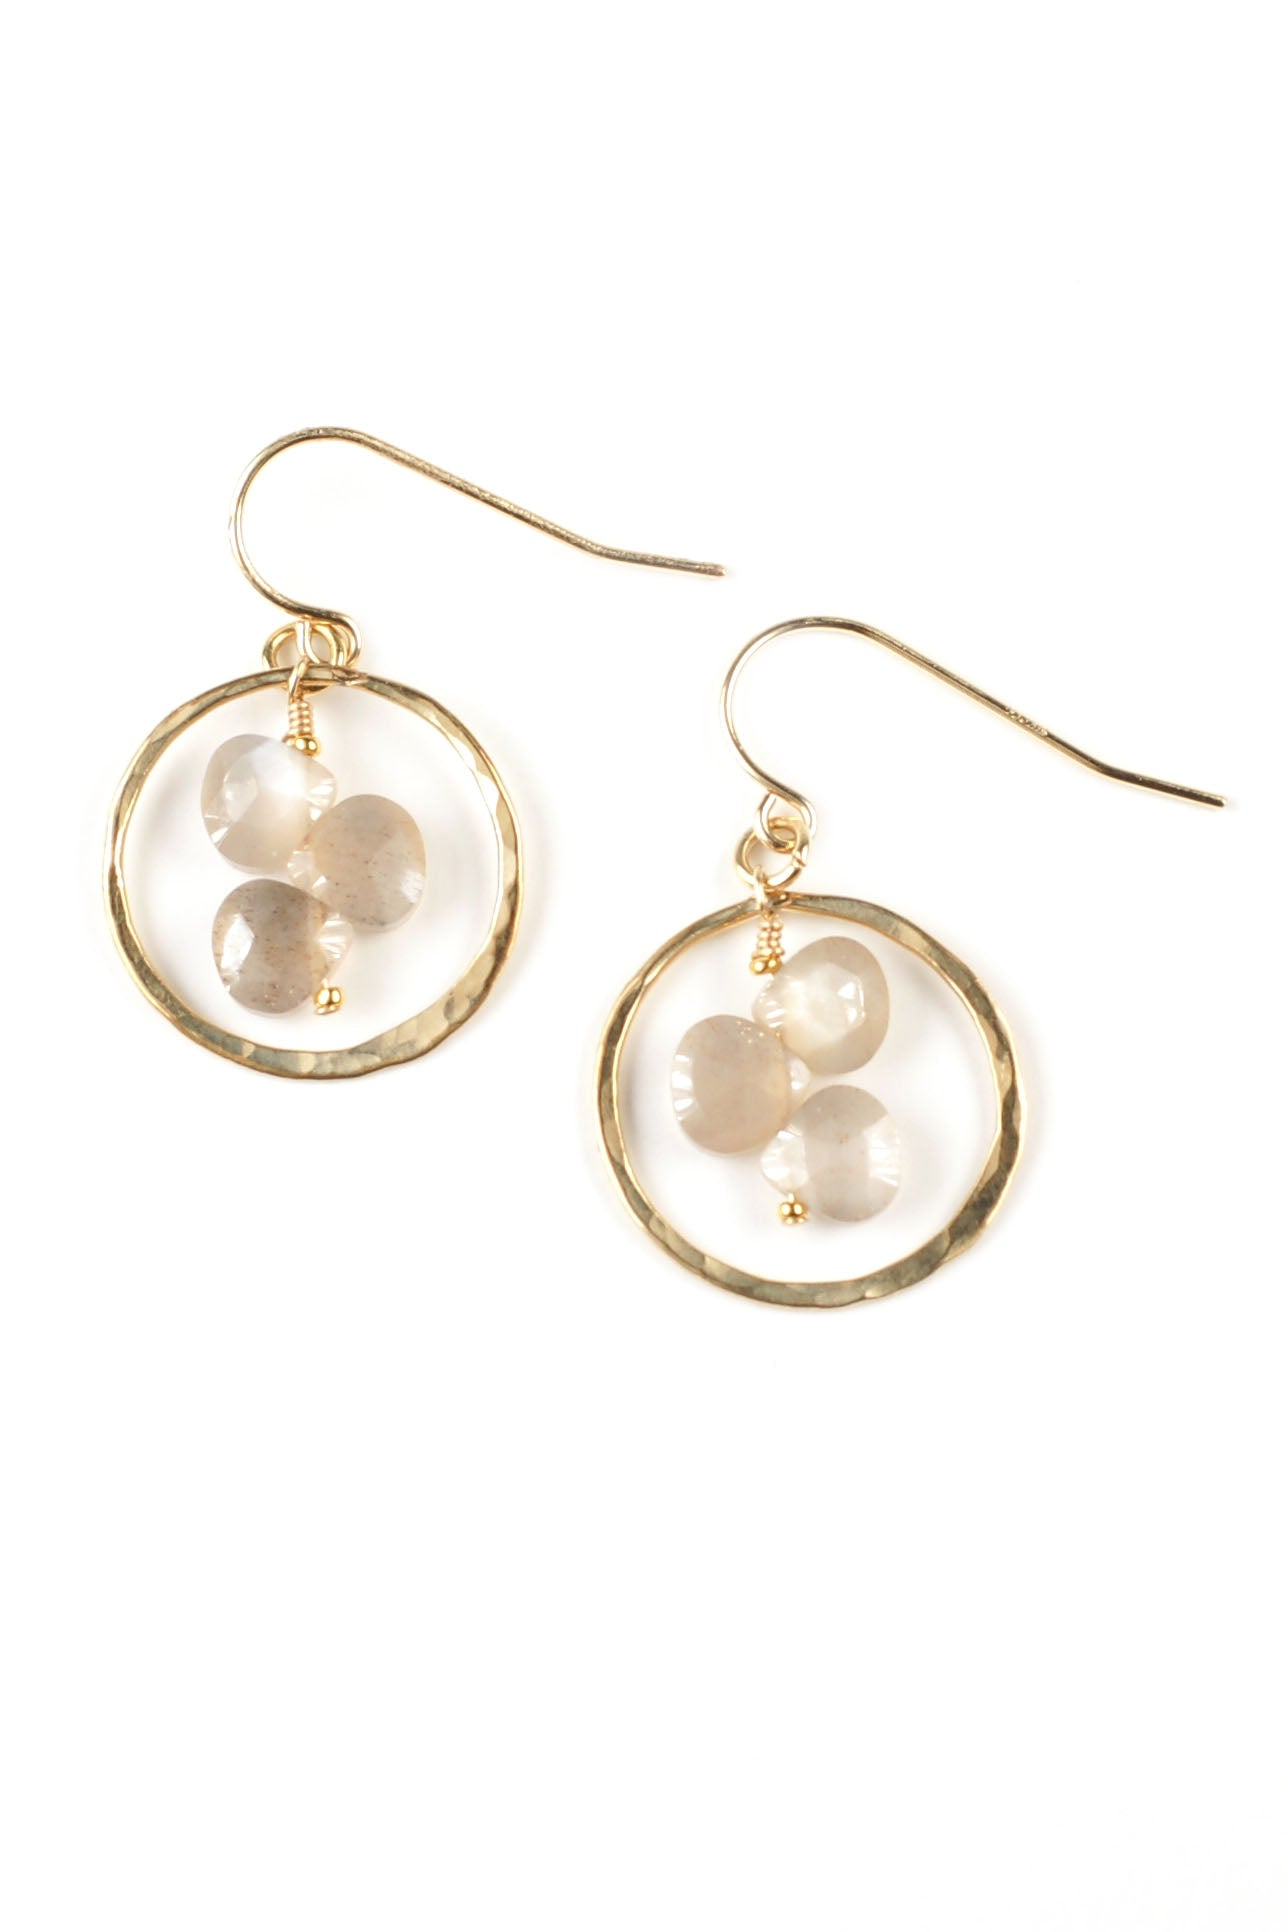 Peach Moonstone Trio Earrings